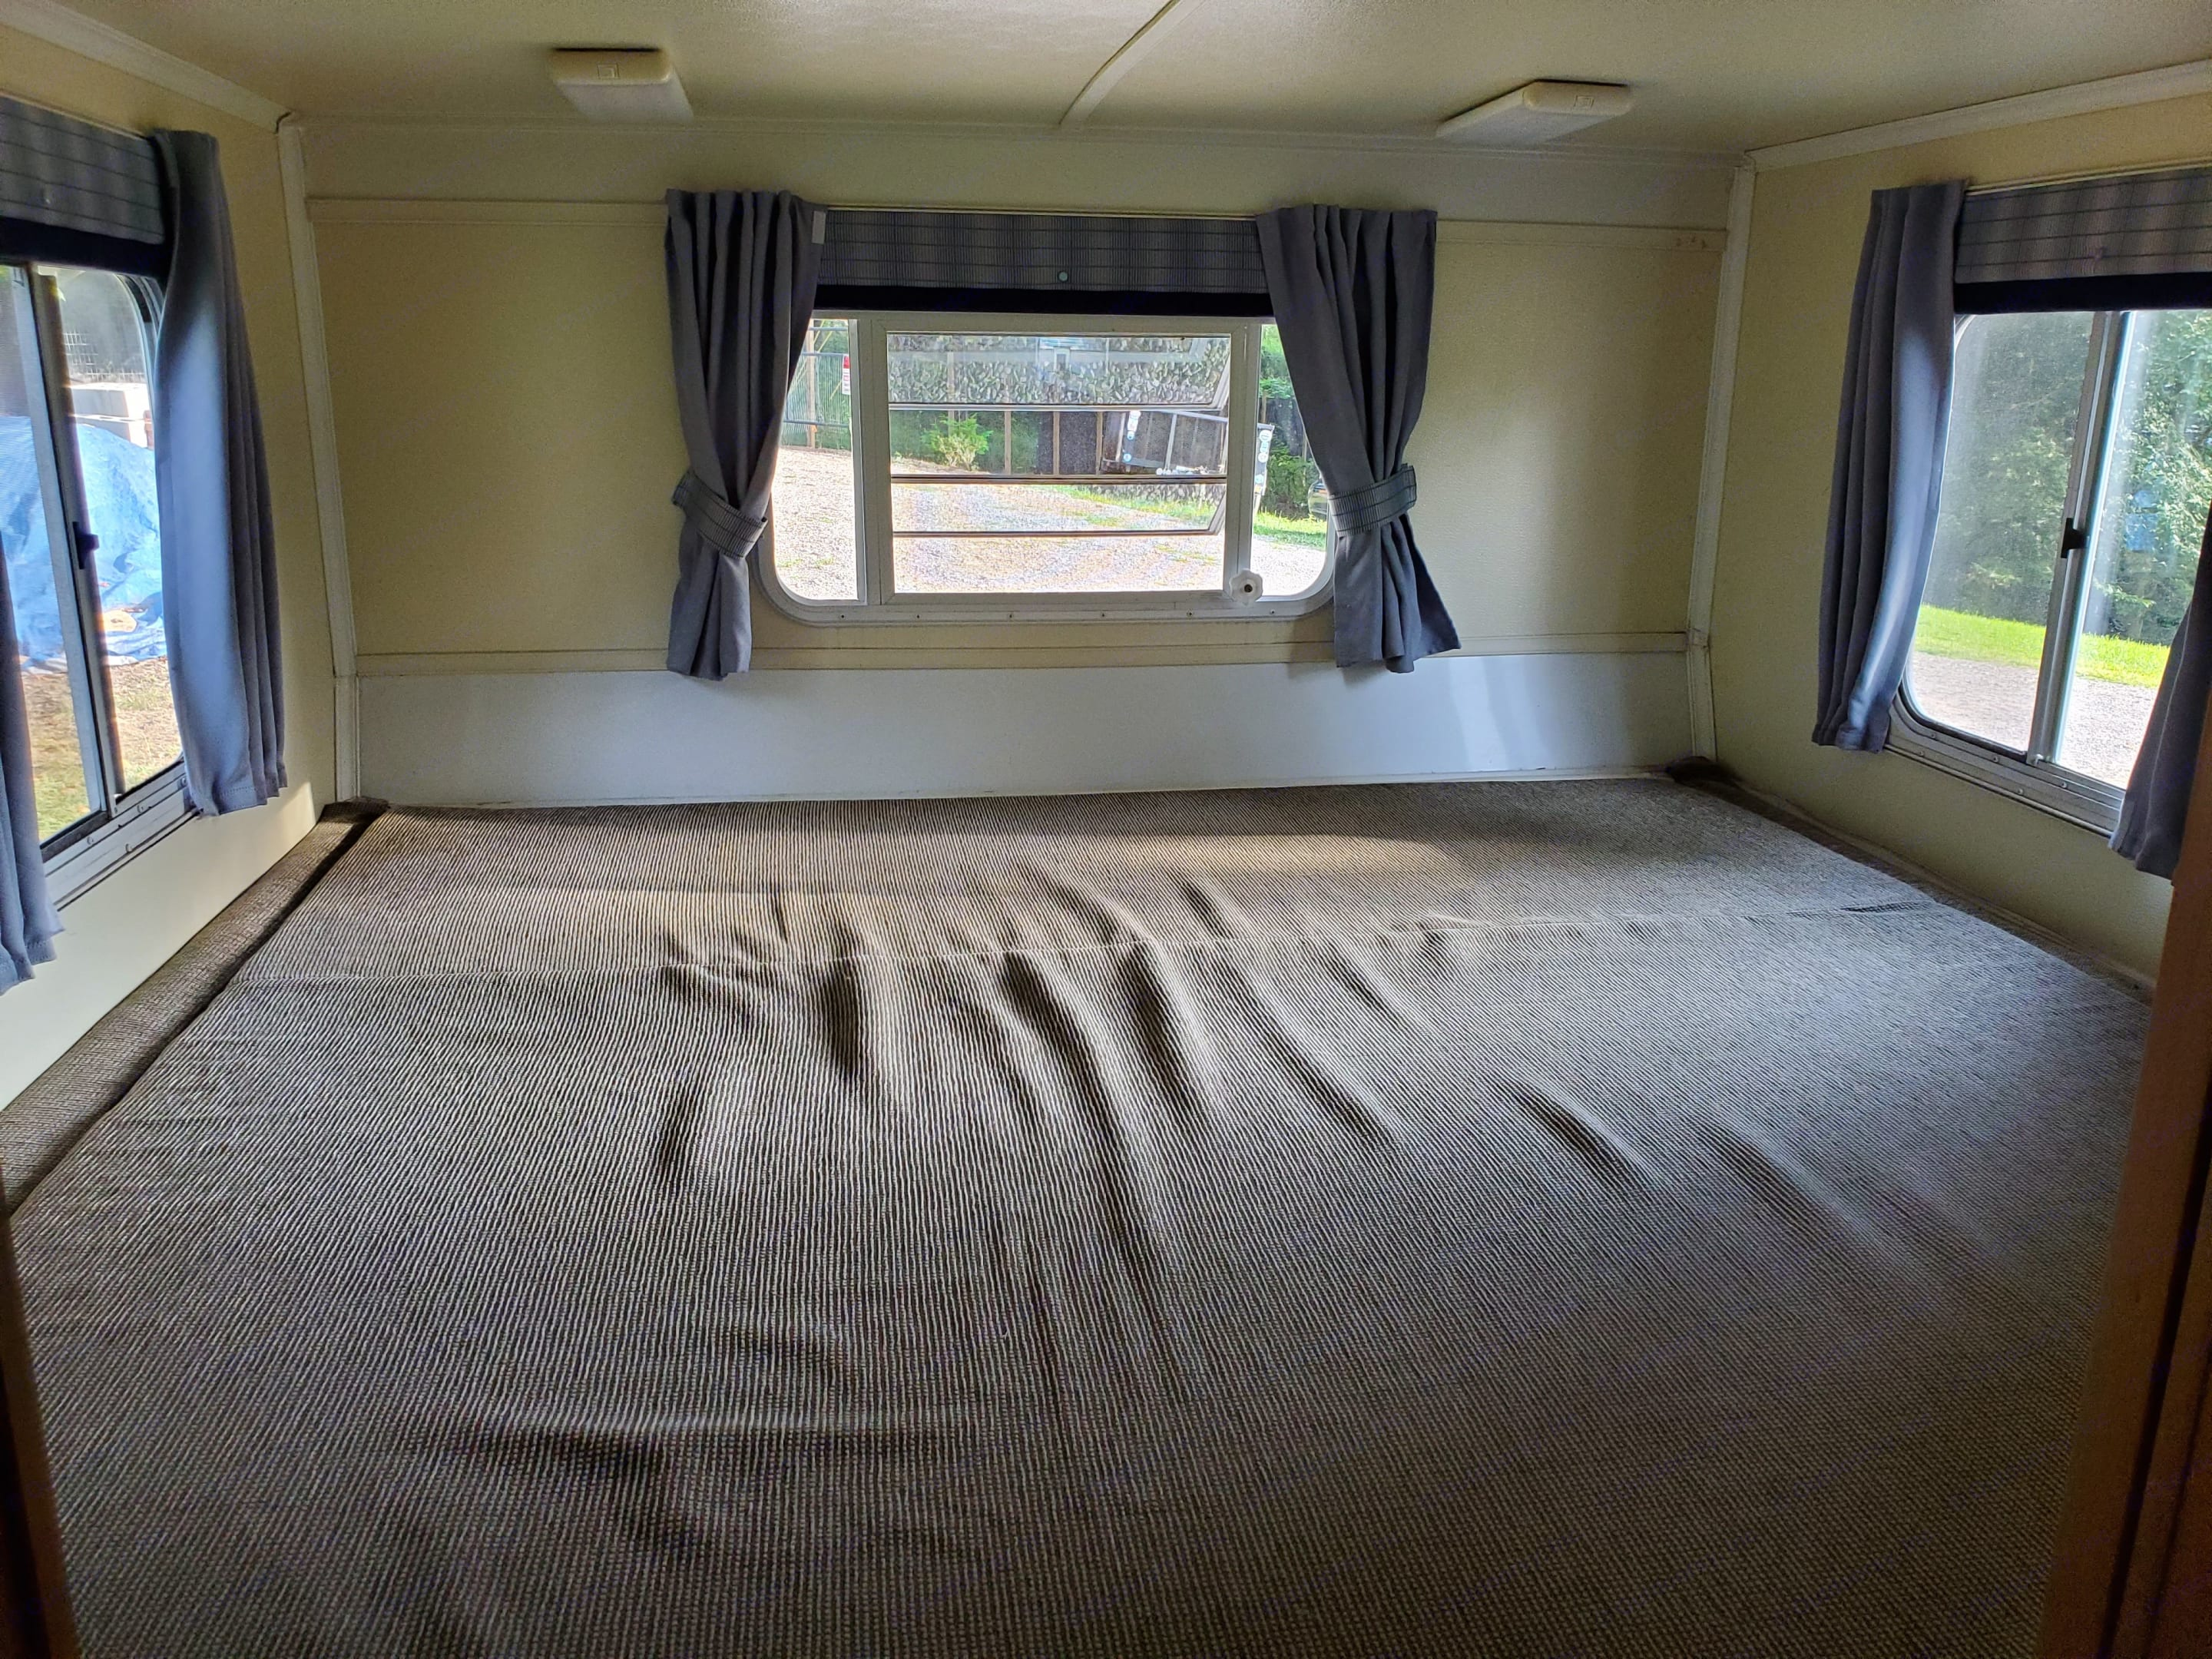 King size bed sleeps up to 2 adults and 2 children comfortably. Sheets provided. . Trailmanor 3124ks 2006